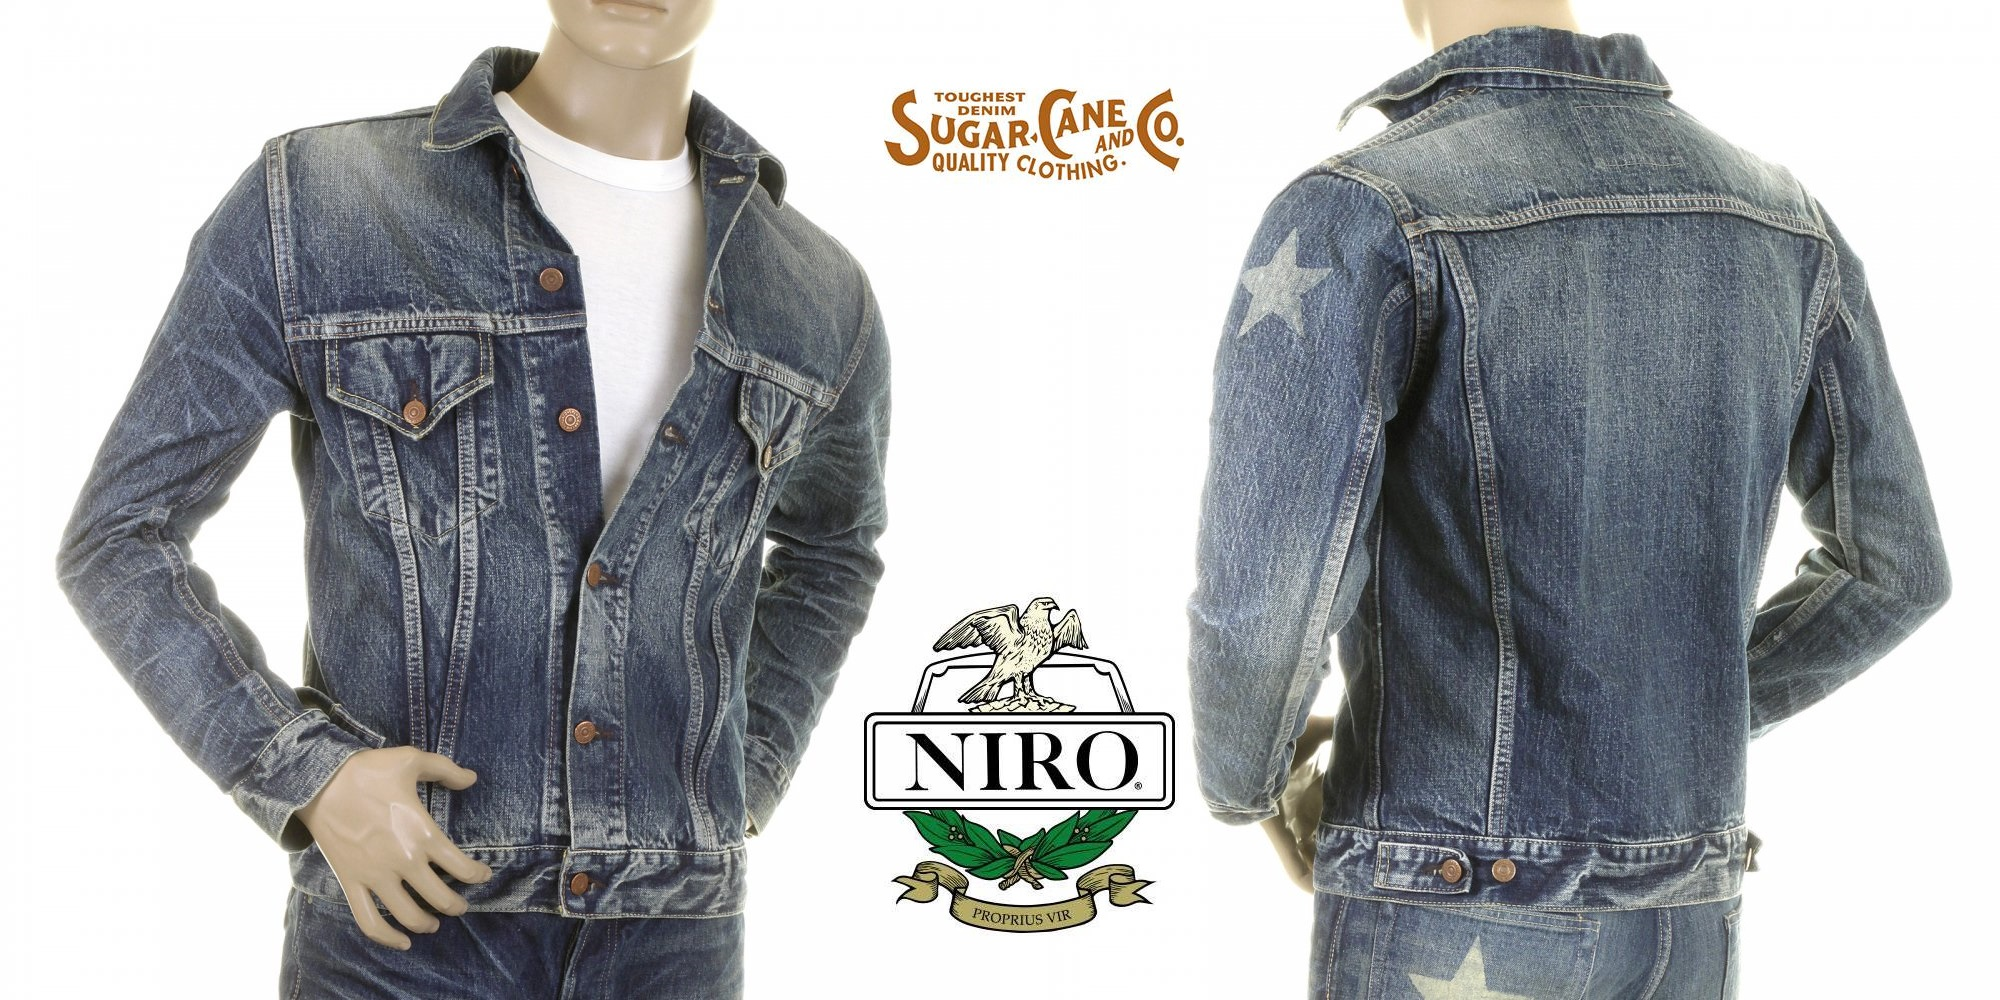 Sugarcane denim jacket